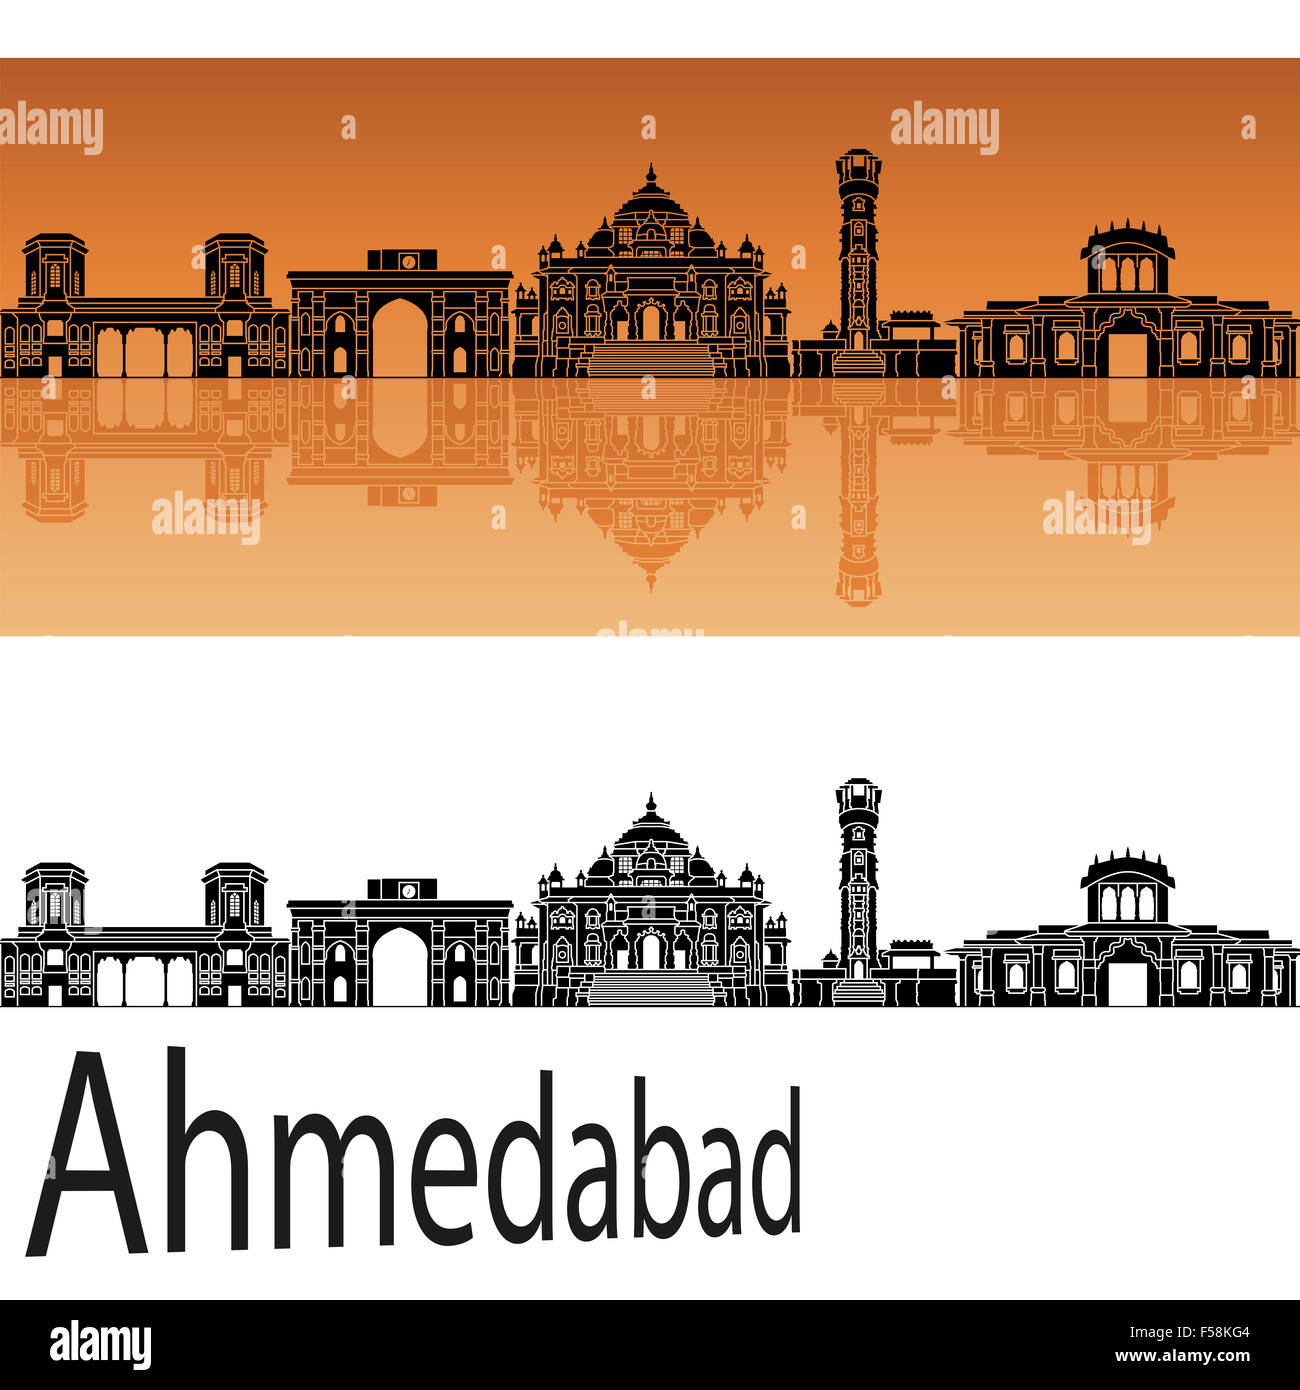 Ahmedabad skyline in orange background in editable vector file - Stock Image